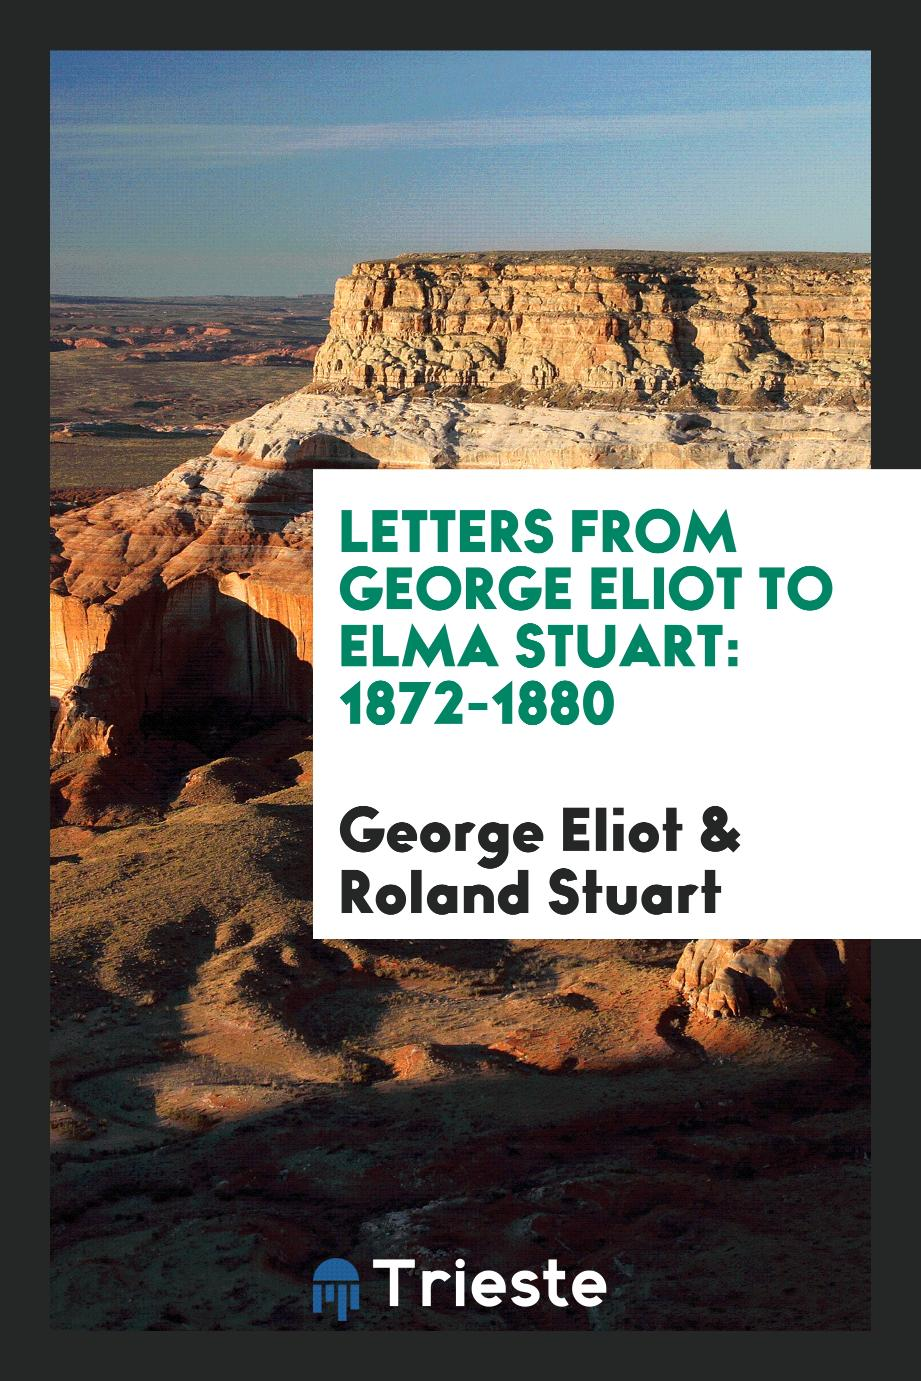 Letters from George Eliot to Elma Stuart: 1872-1880